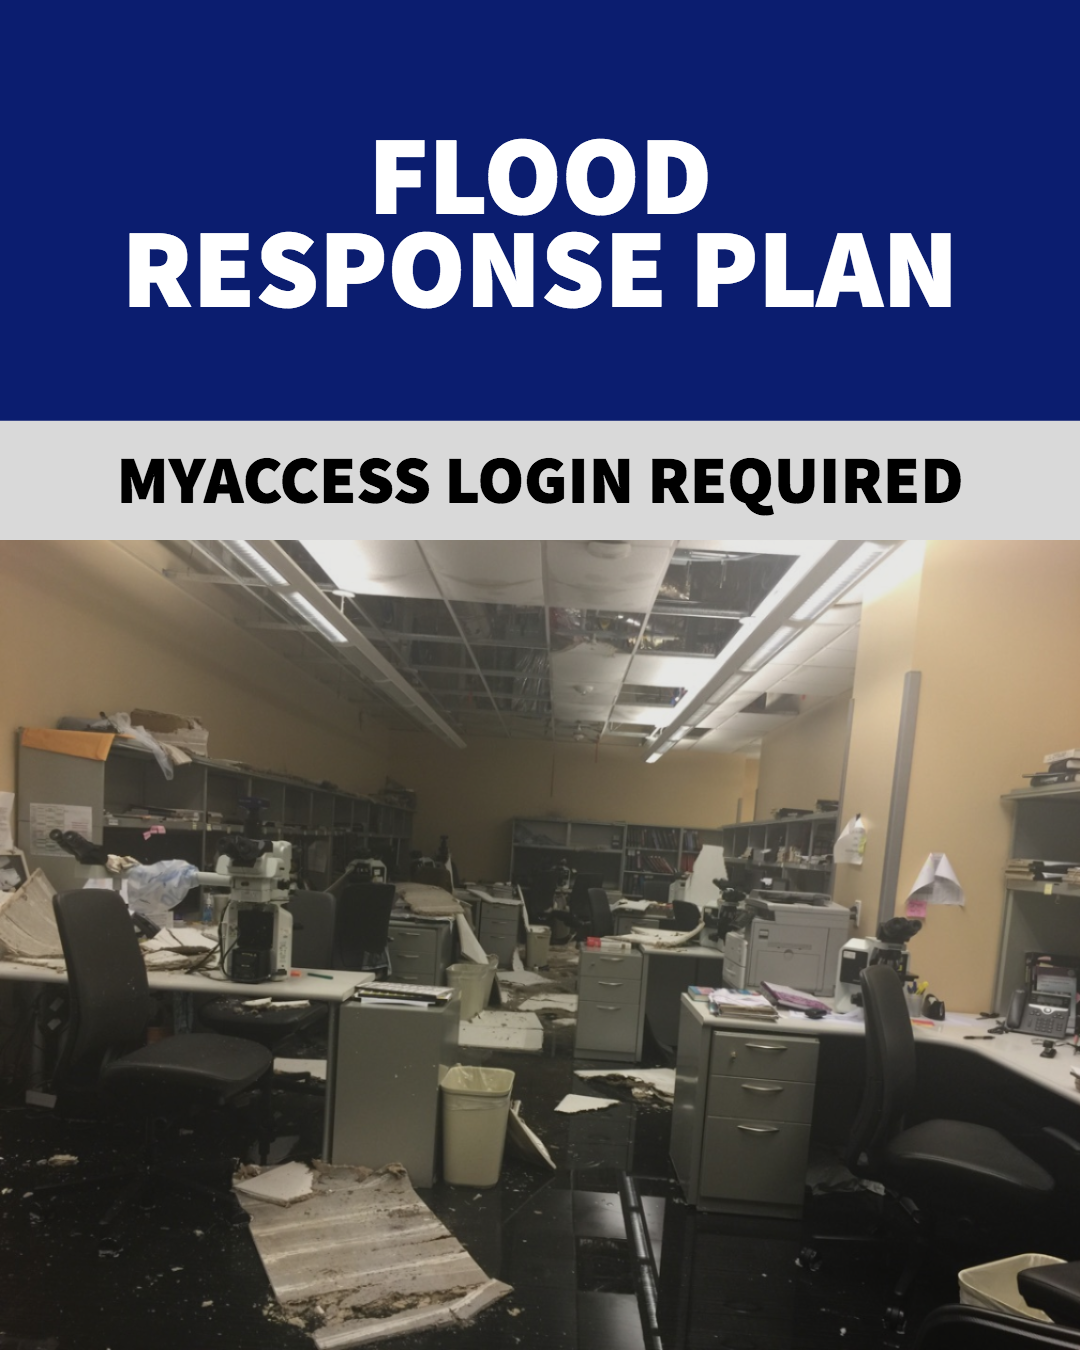 Flood Response Plan